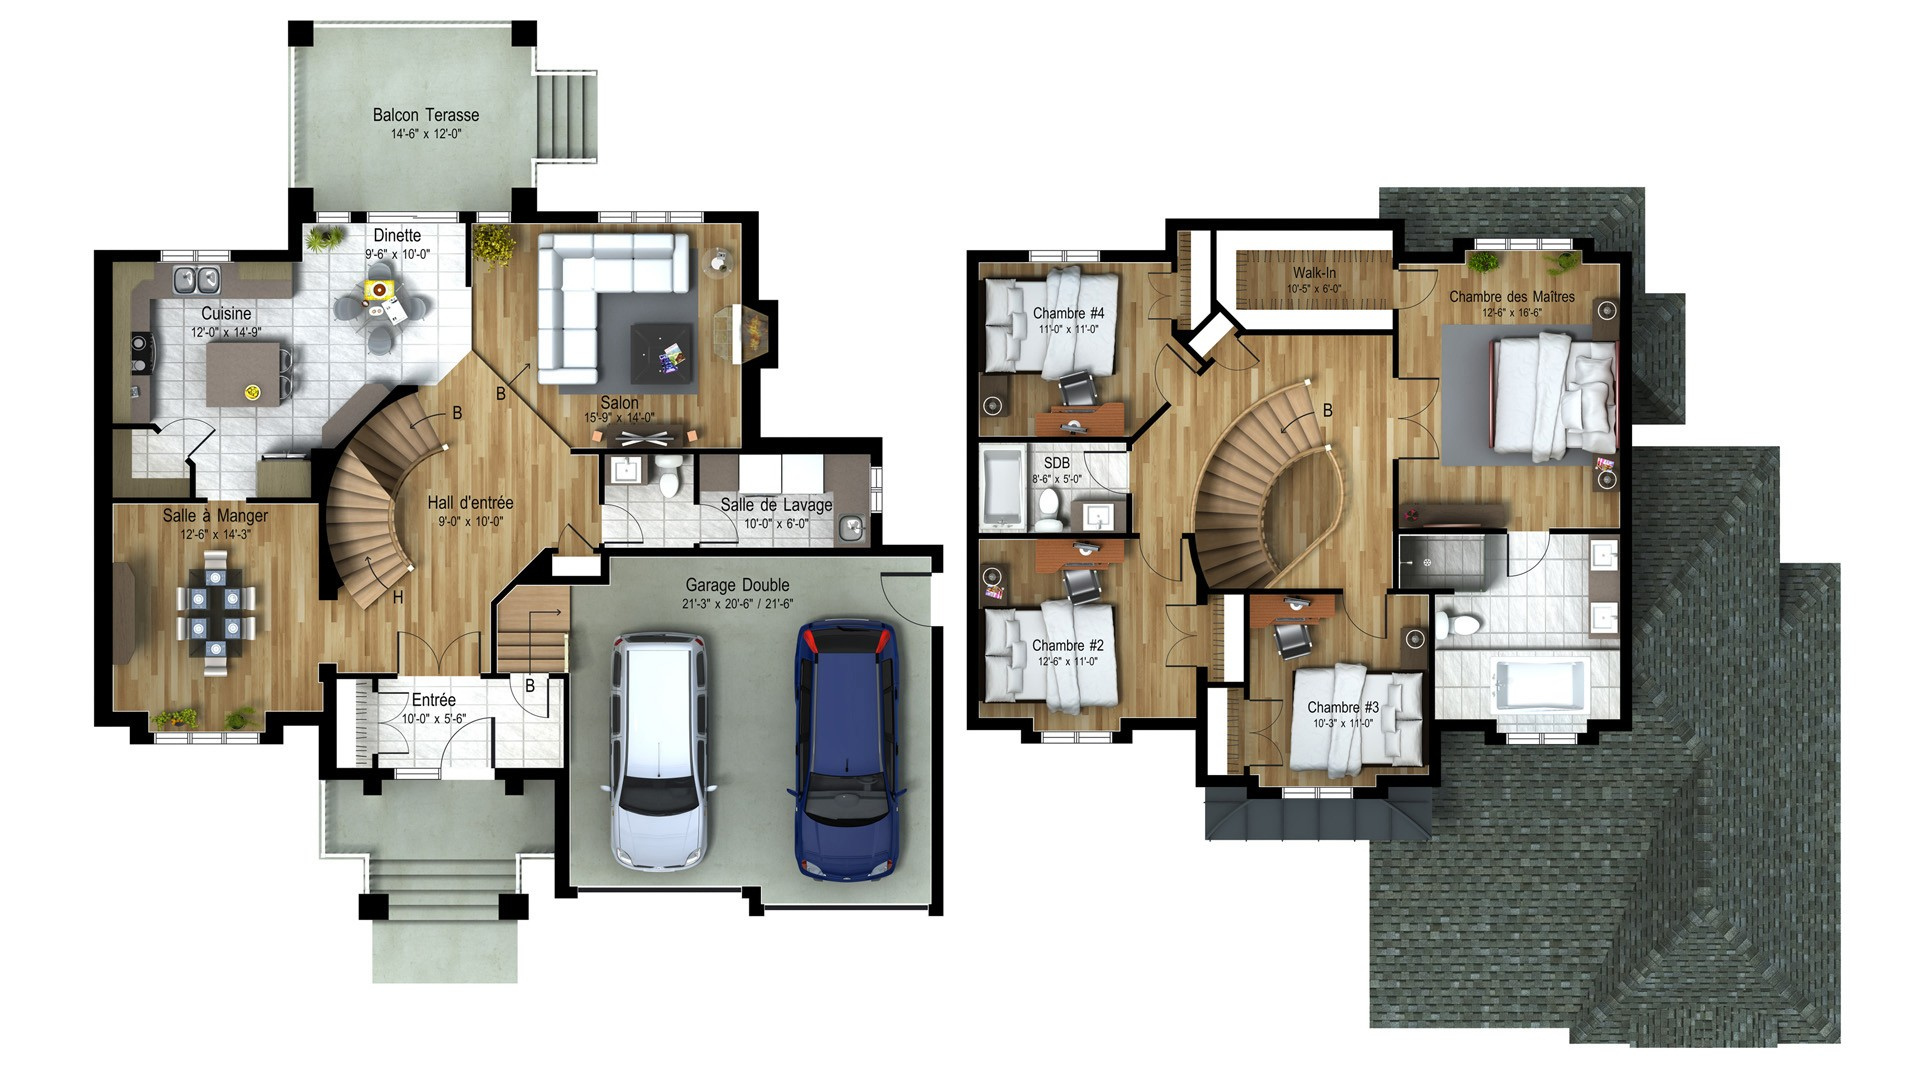 Cottage_Chateauneuf_Luxury Home Plan_Domicil